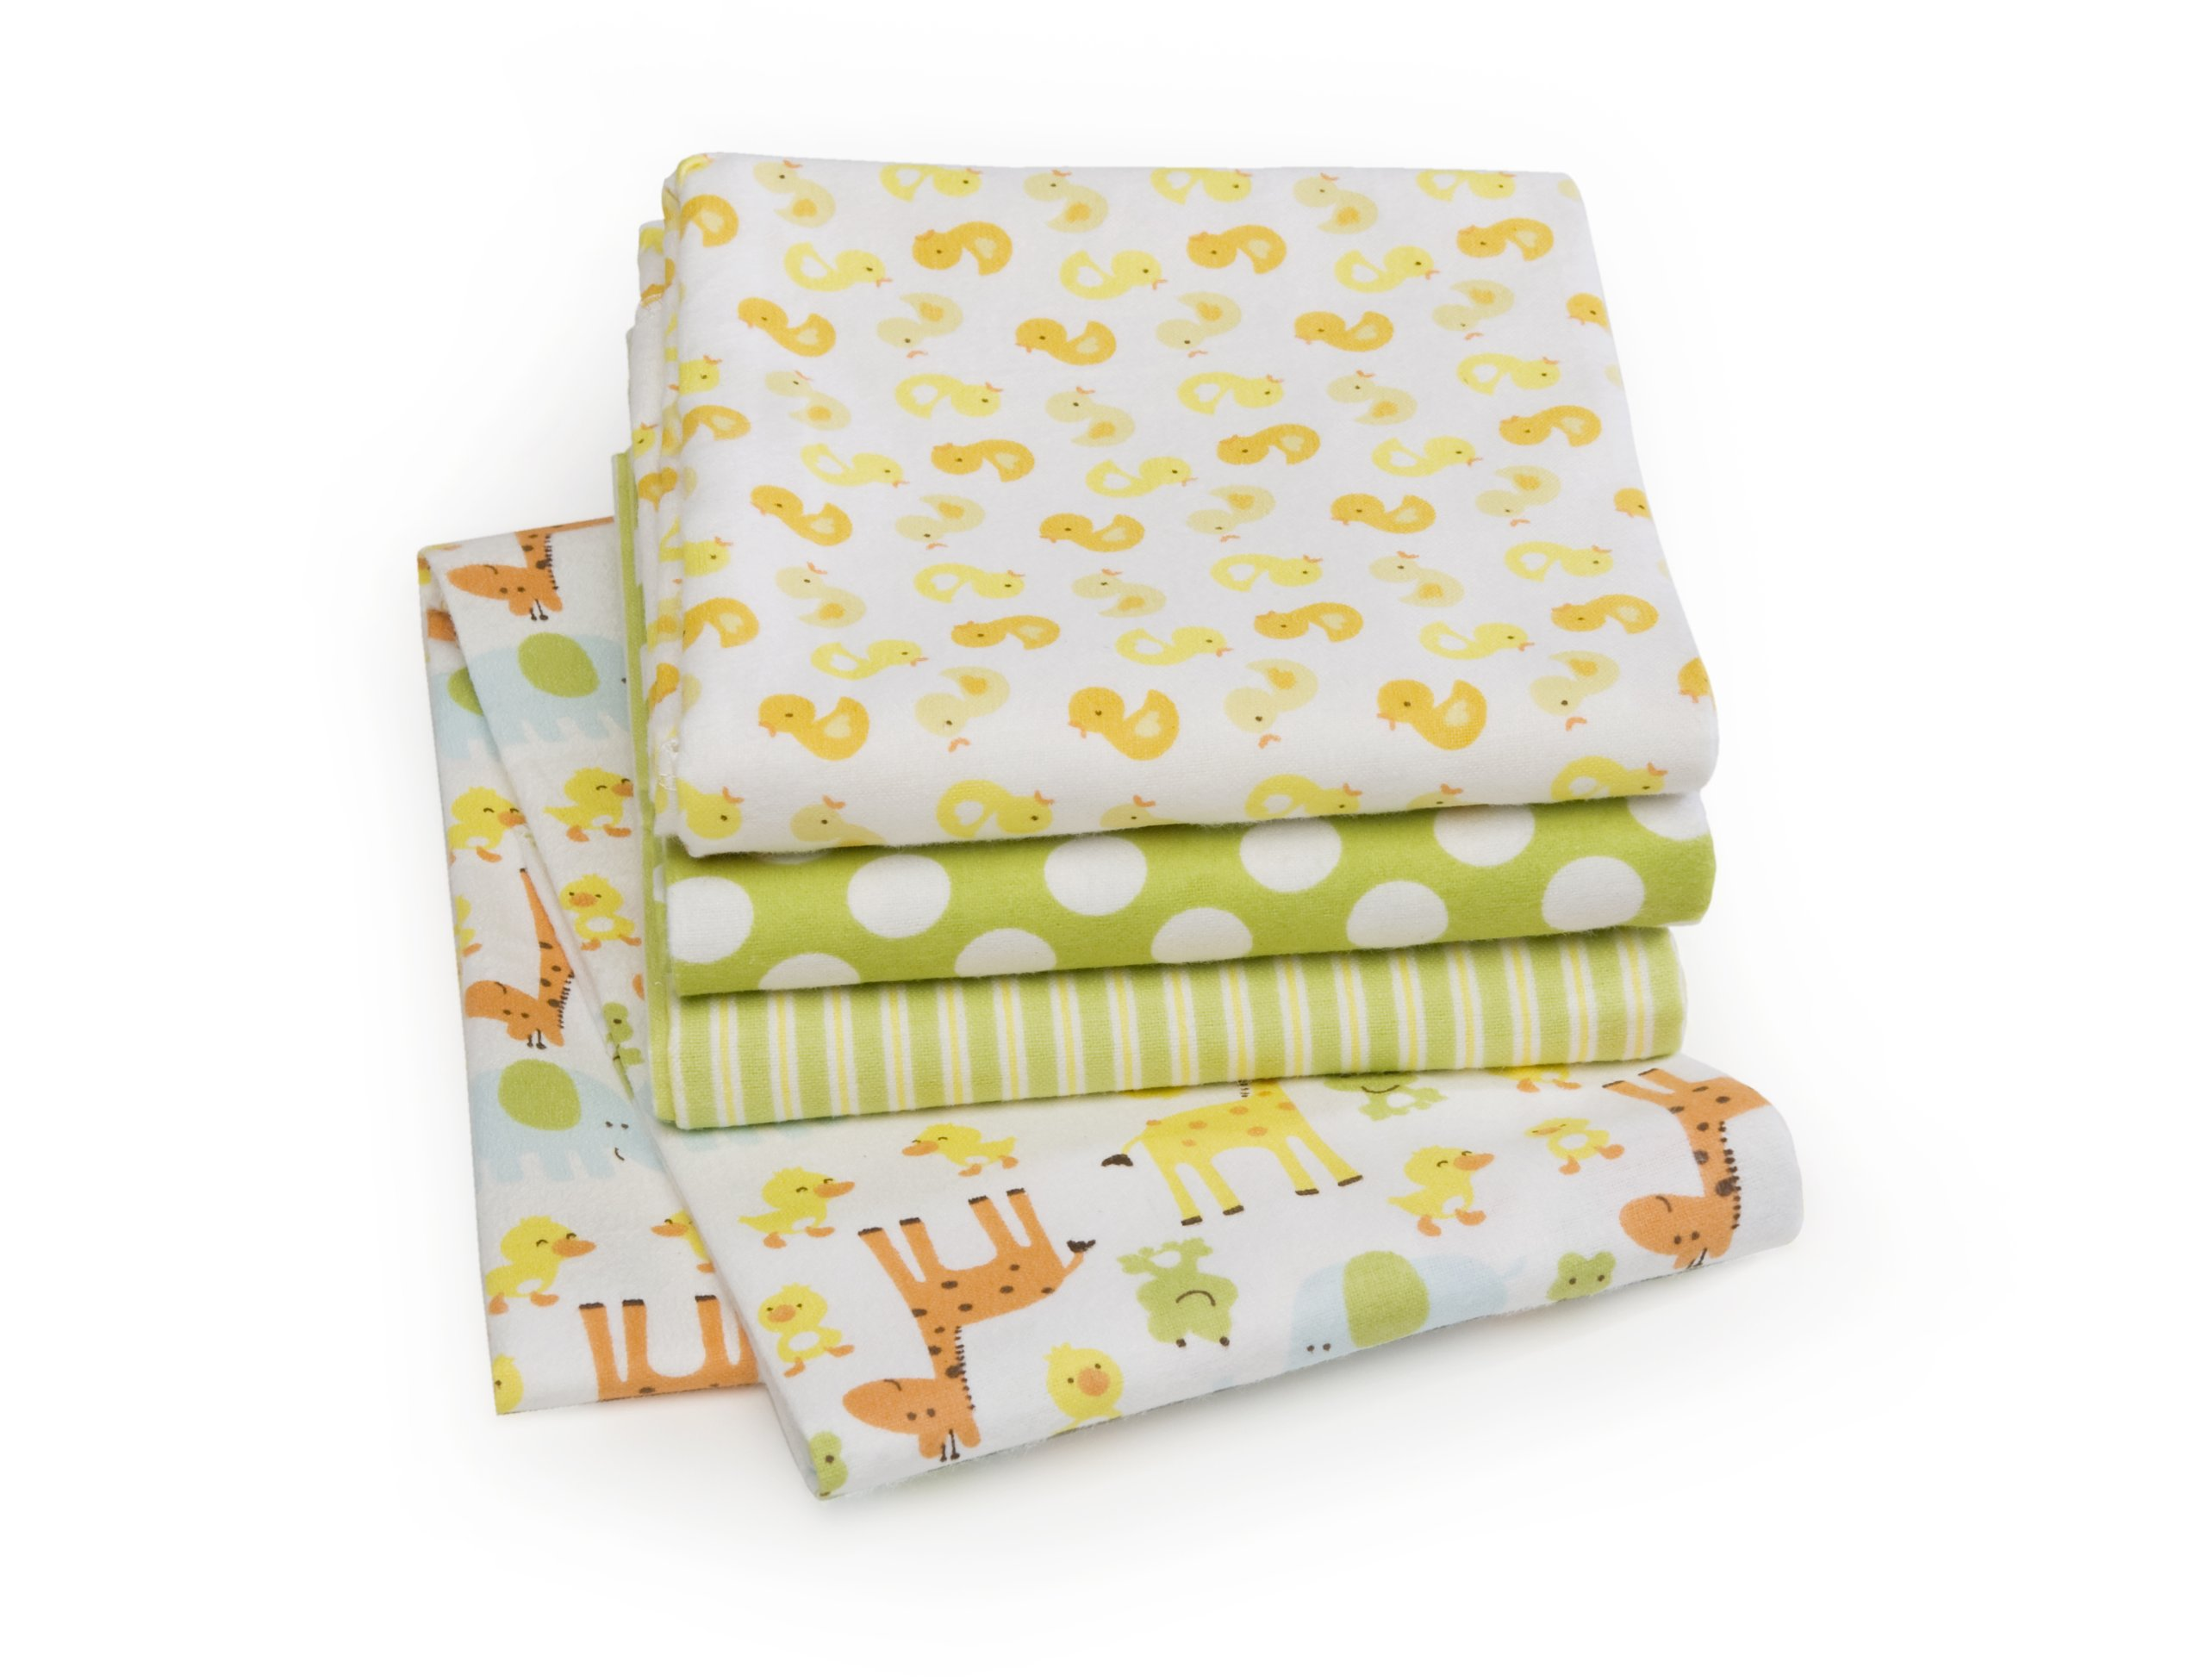 Carter's 4 Pack Wrap Me Up Receiving Blanket, Safari Duck (Discontinued by Manufacturer)